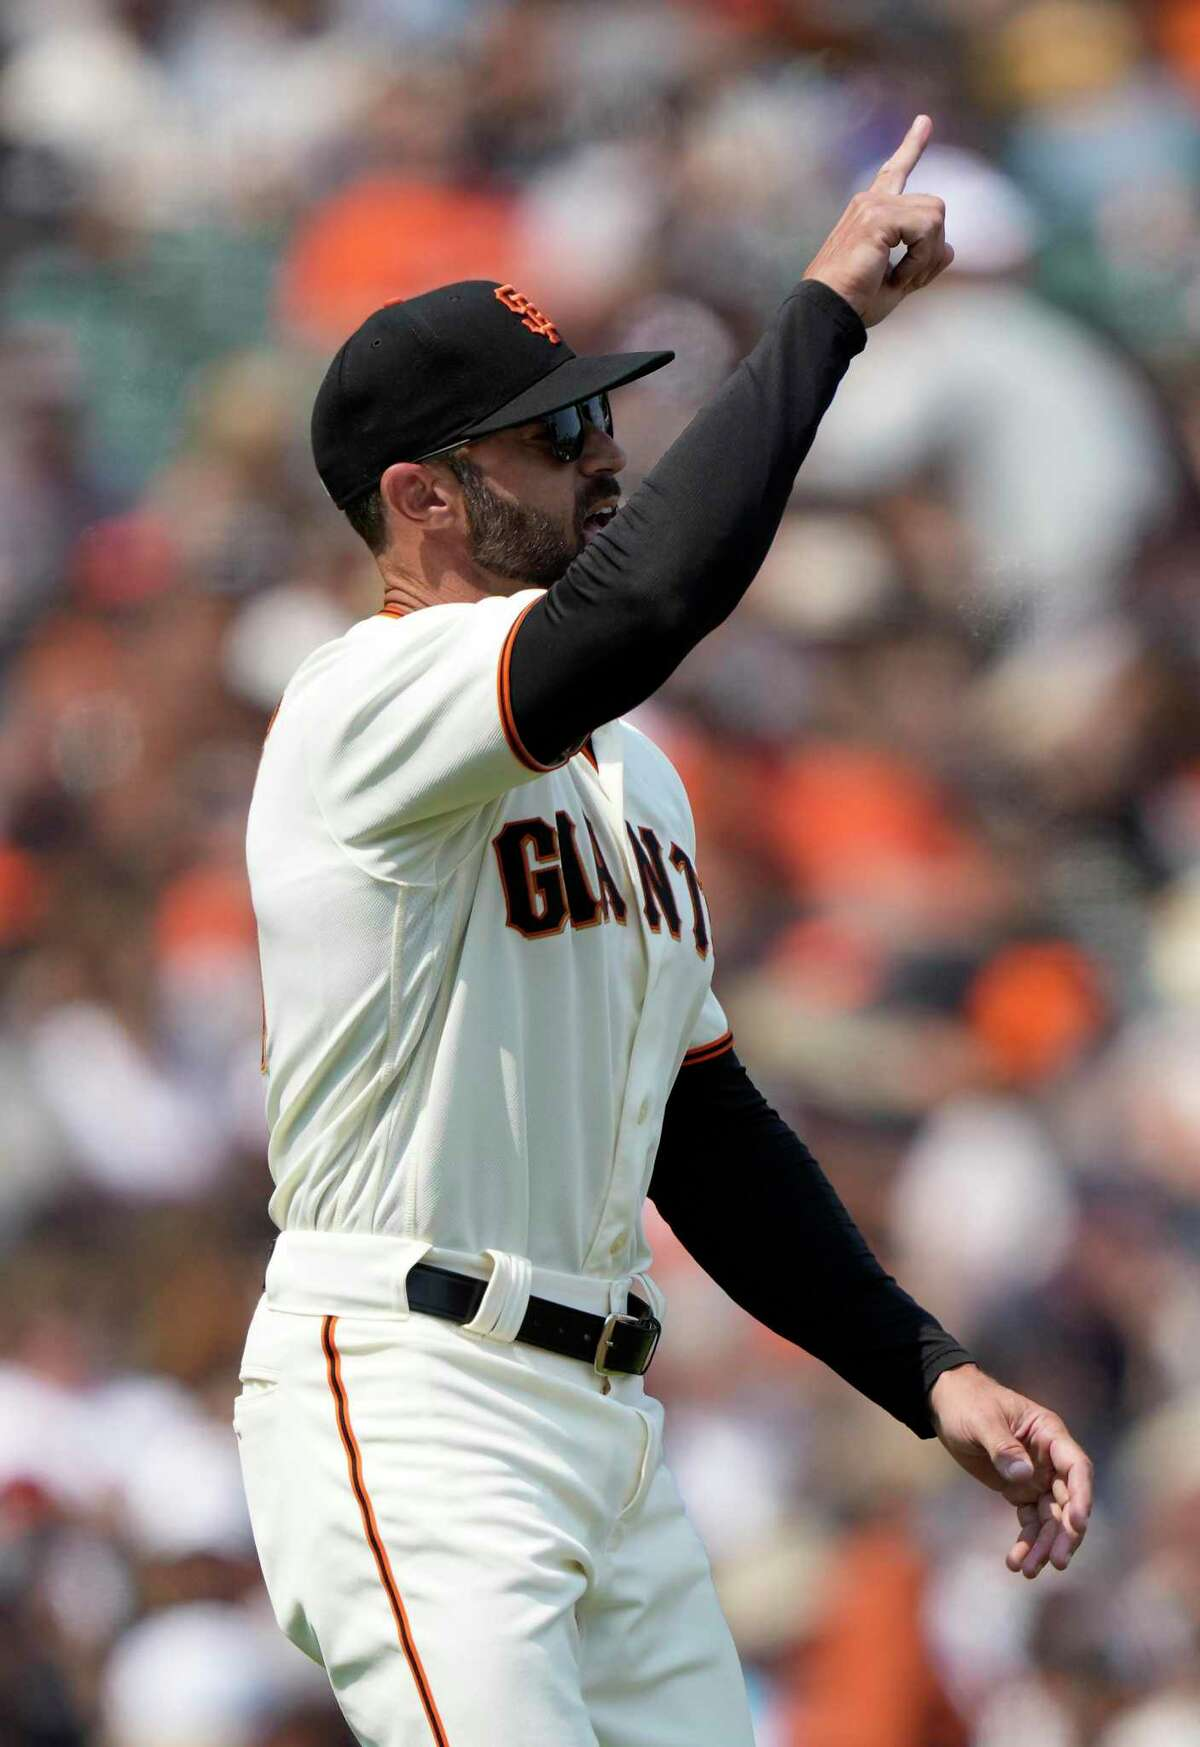 SAN FRANCISCO, CALIFORNIA - AUGUST 15: Manager Gabe Kapler #19 of the San Francisco Giants signals the bullpen to make a pitching change against the Colorado Rockies in the top of the seventh inning at Oracle Park on August 15, 2021 in San Francisco, California. (Photo by Thearon W. Henderson/Getty Images)